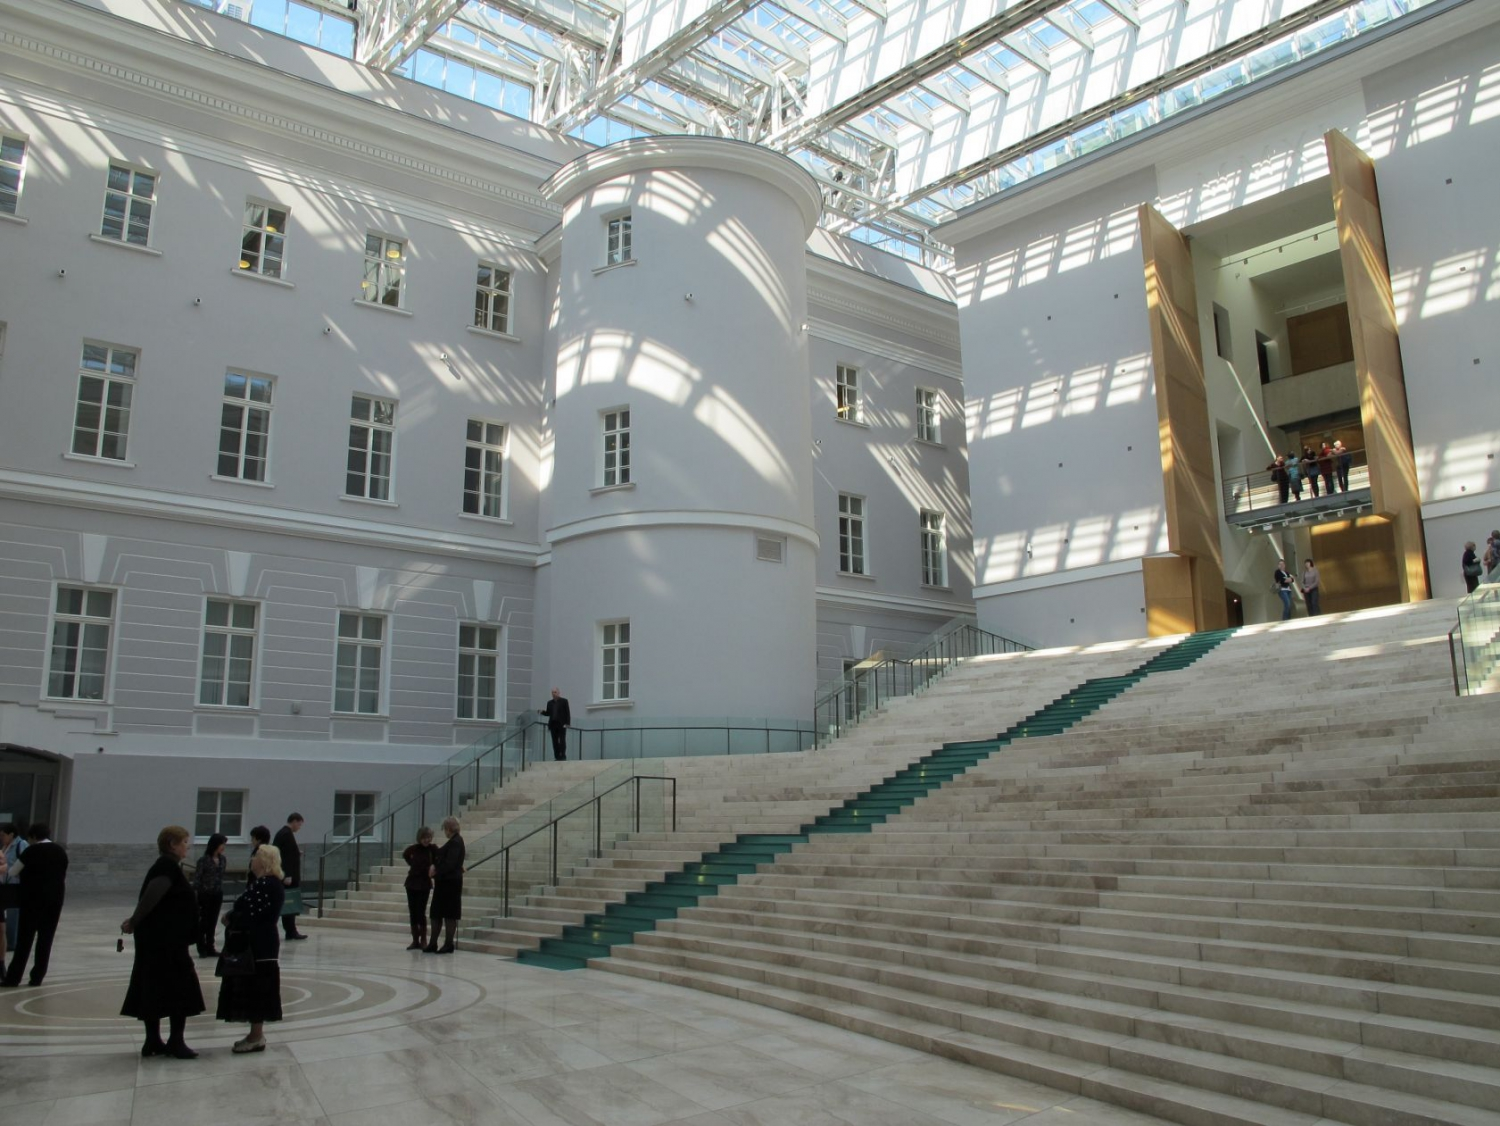 General staff building, new Hermitage gallery due to open in 2014